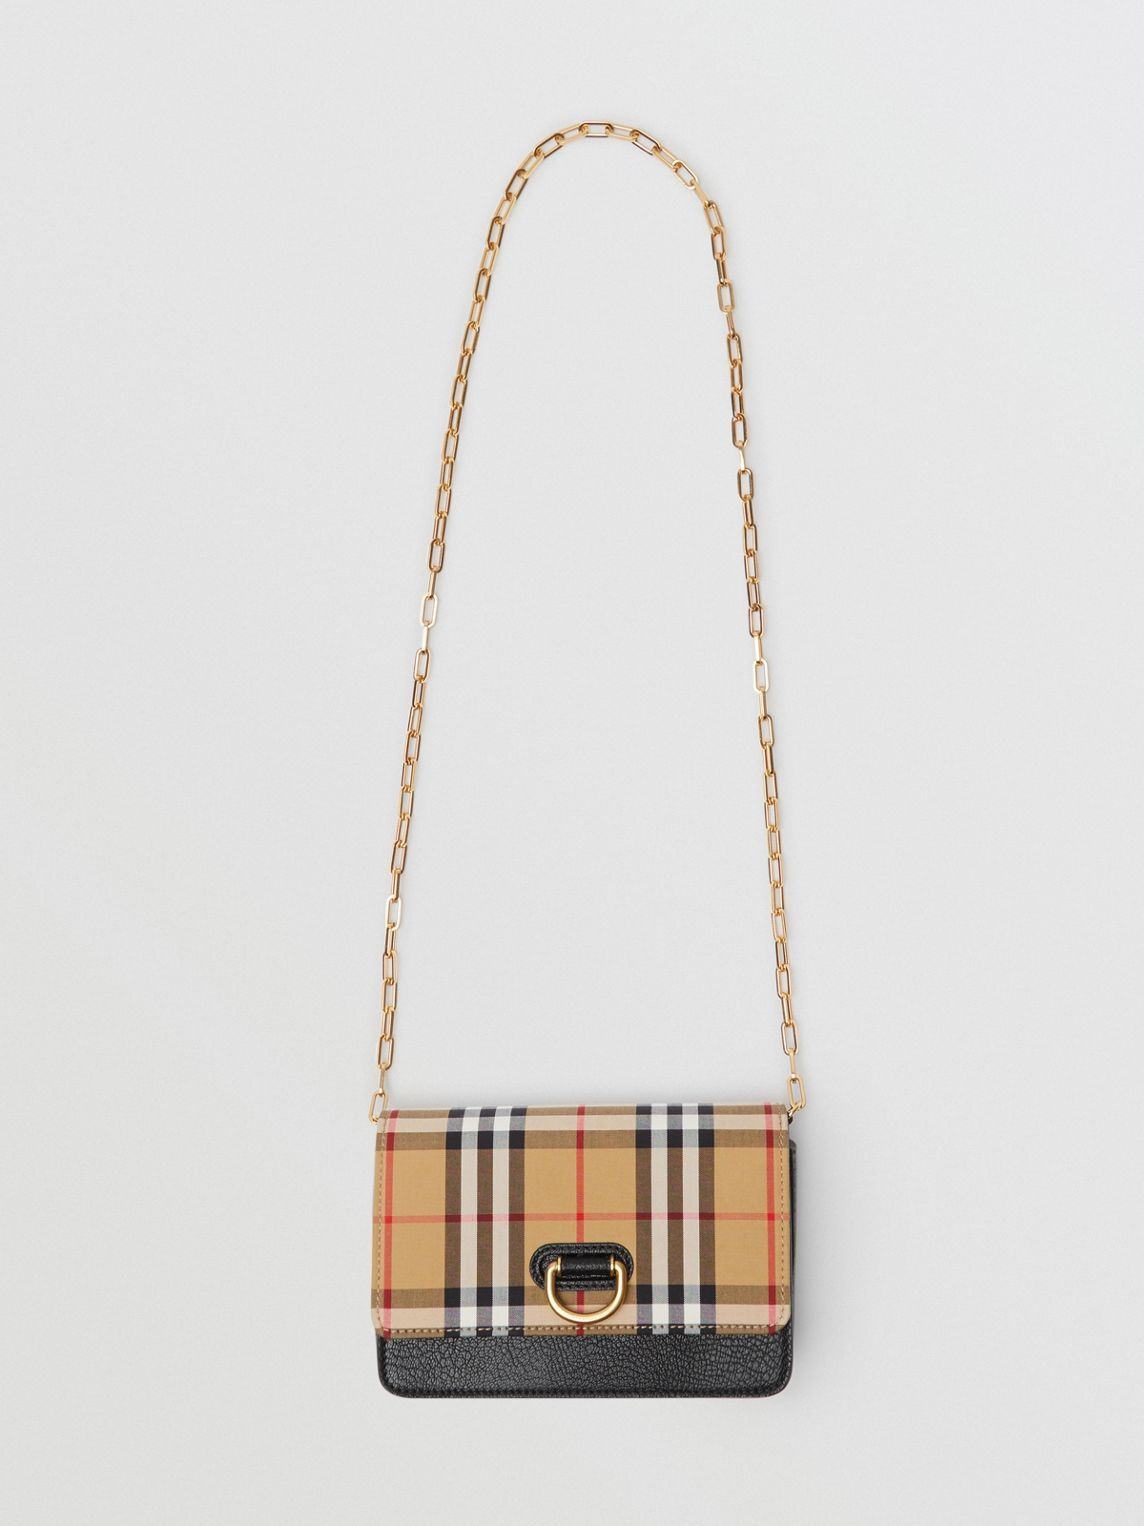 3616fcc184e5 The Mini Vintage Check and Leather D-ring Bag in Black - Women in ...